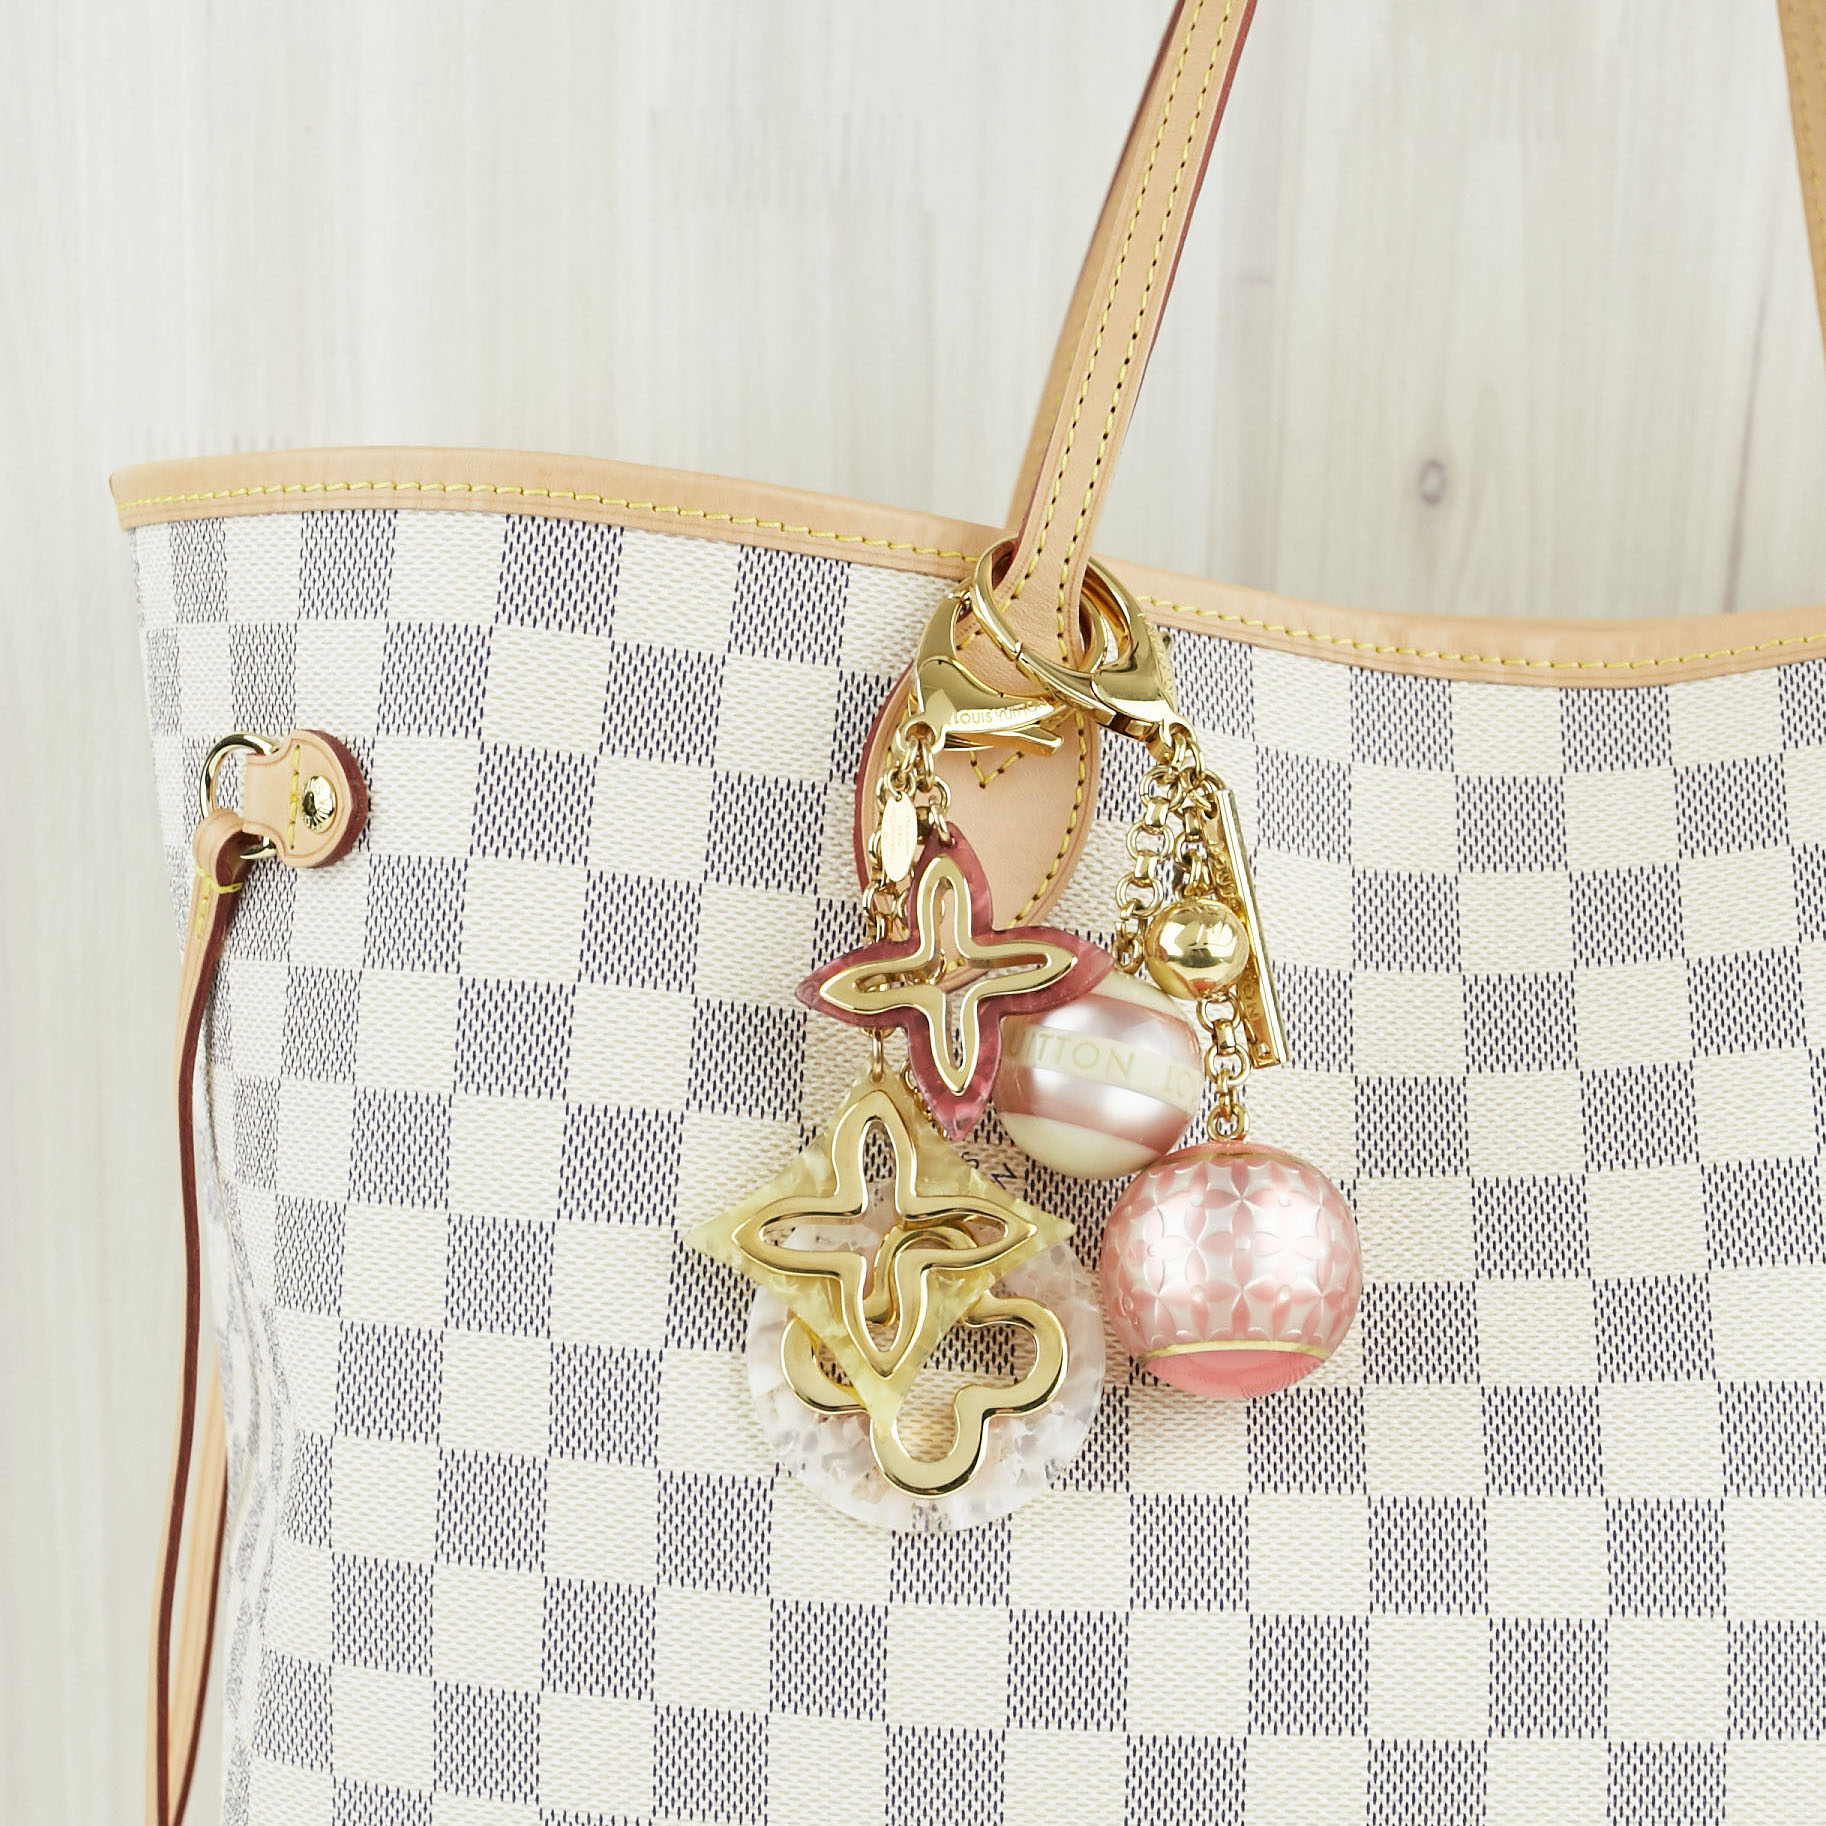 Louis Vuitton Damier Azur Neverfull Tote with Bag Charms | Yoogi's Closet Authenticated Pre-Owned Luxury yoogiscloset.com